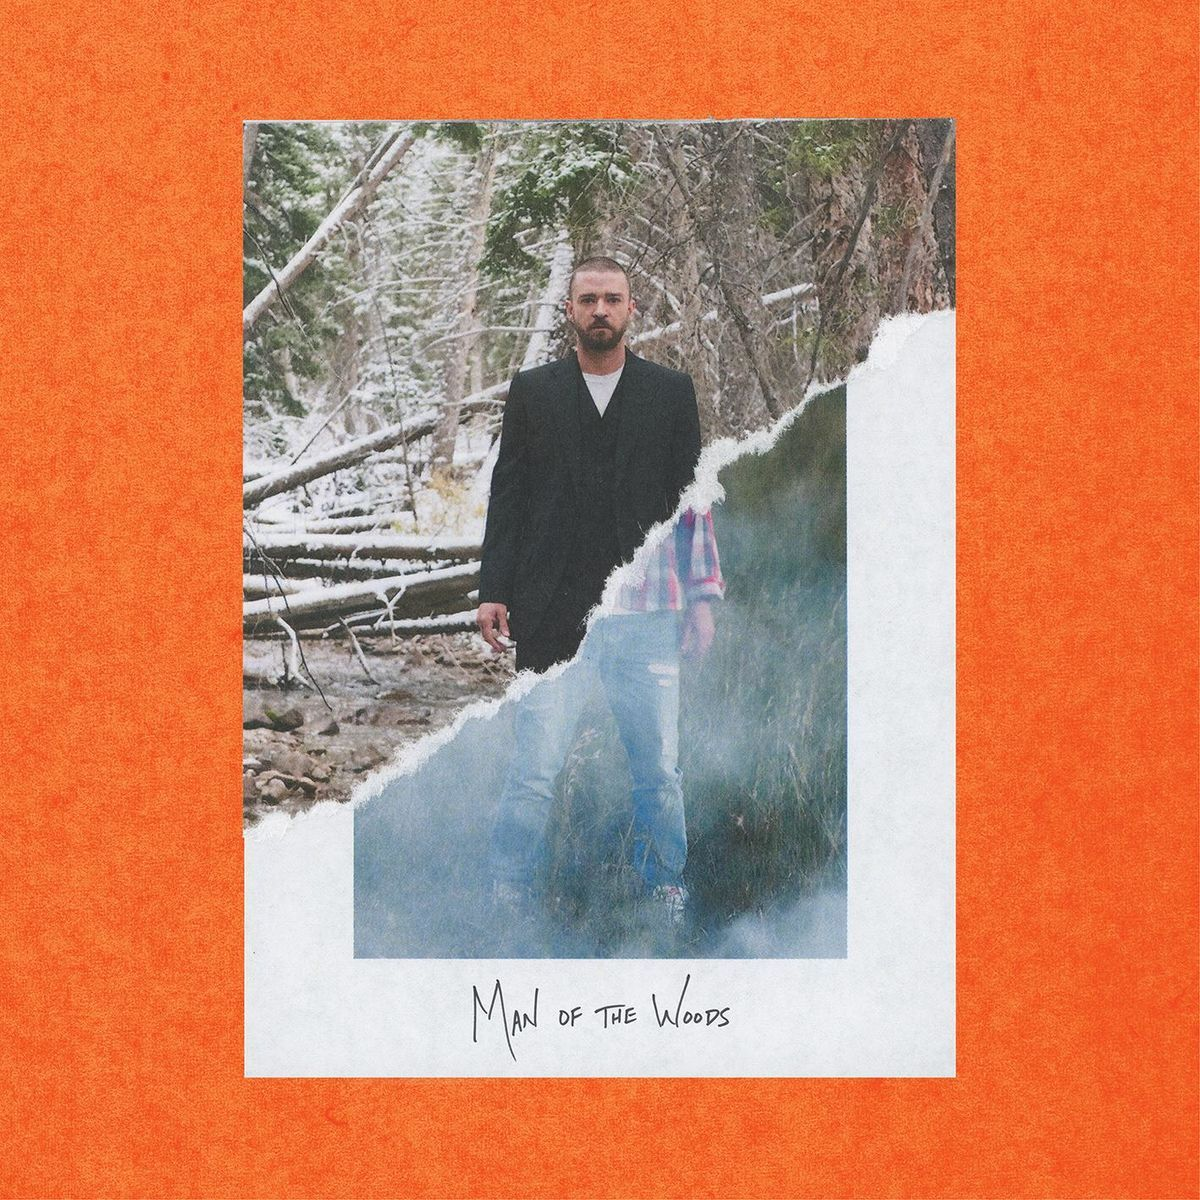 Justin Timberlake - Man Of The Woods album cover